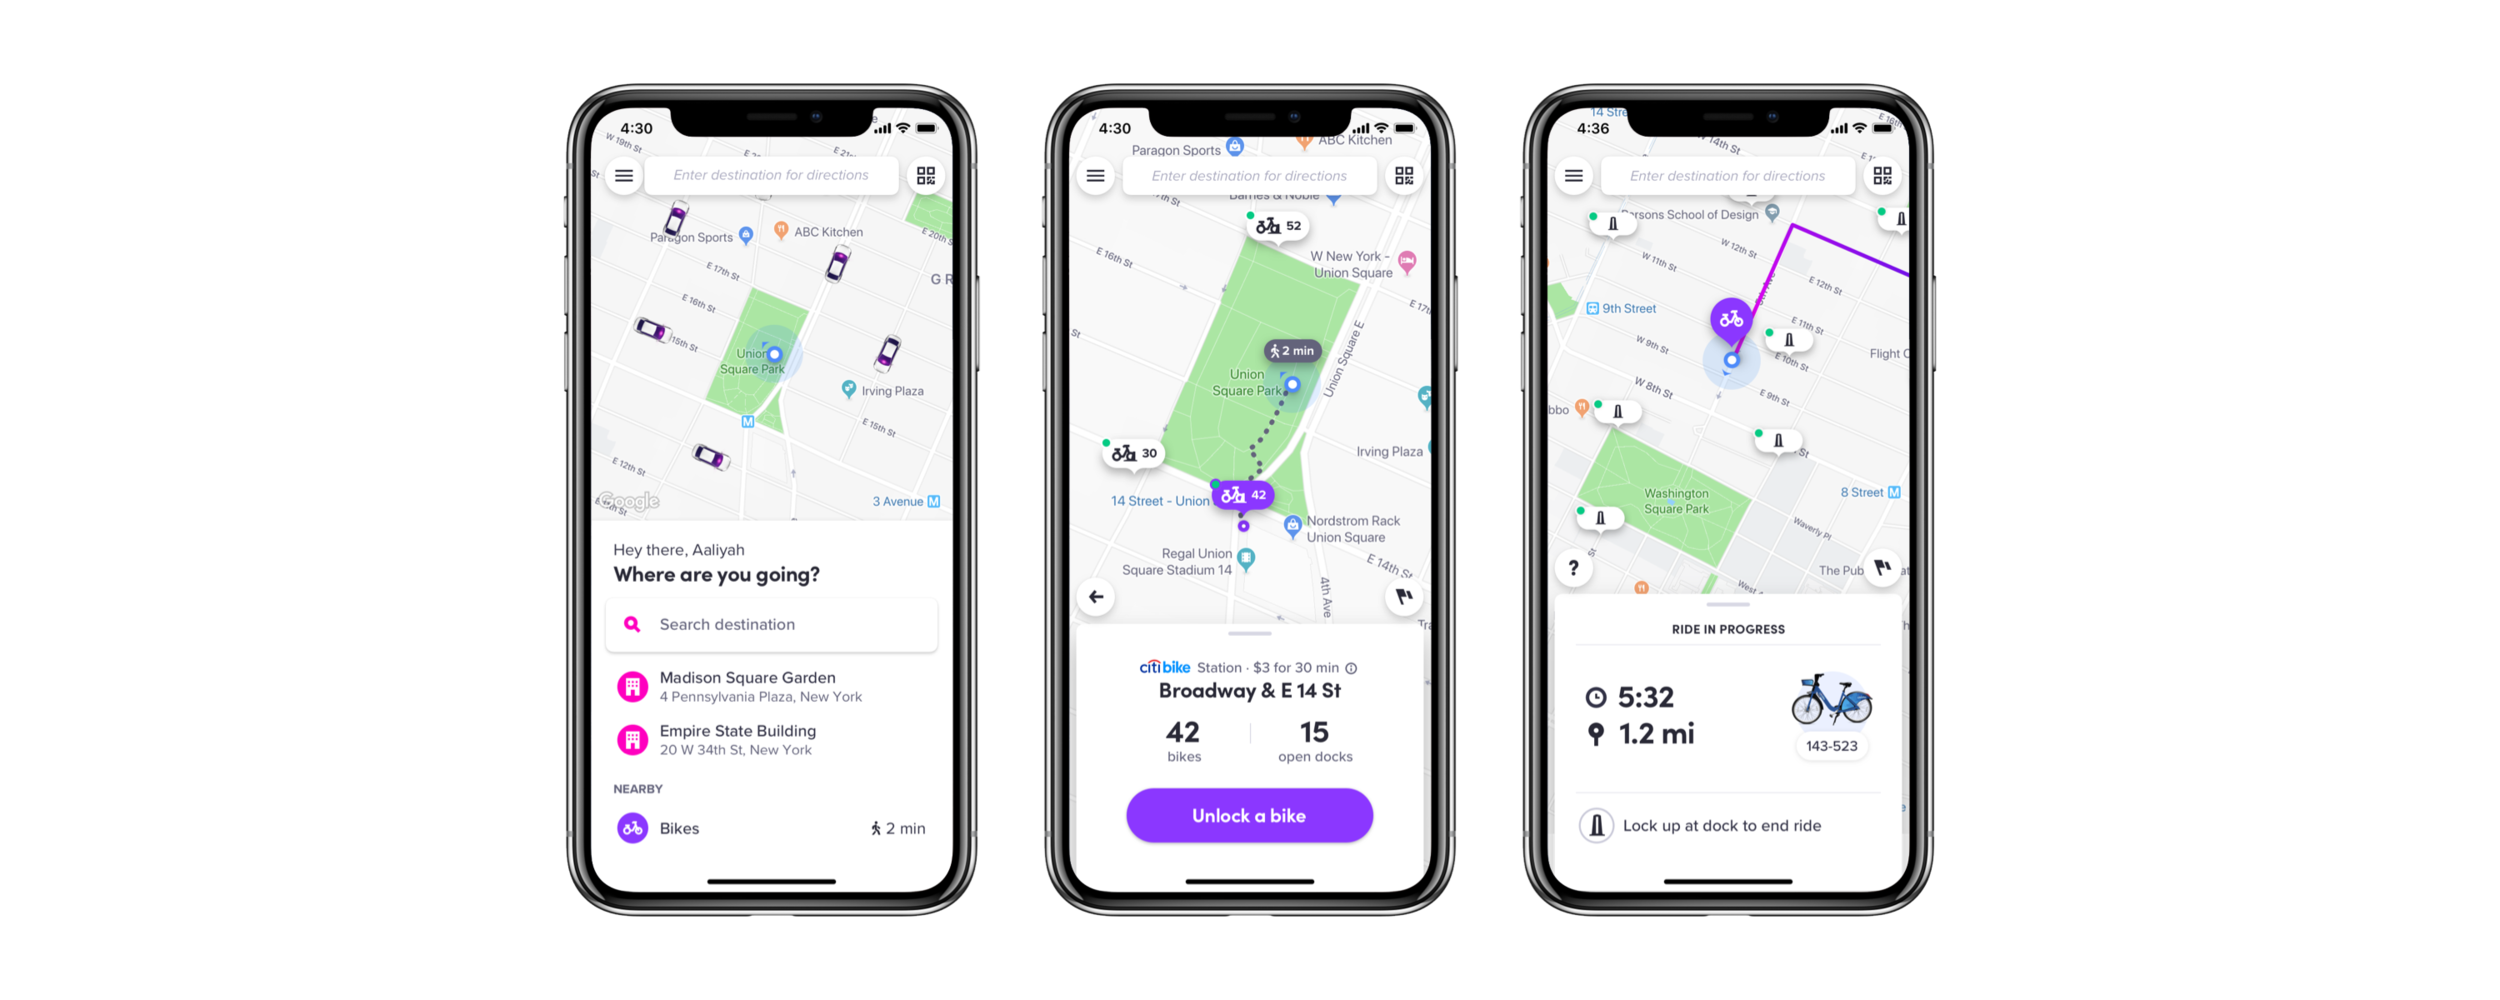 Citi Bike: Now available in the Lyft app | Citi Bike NYC on nyc cycling map, order nyc bike map, tribeca map, bronx zip code map, new york city limits map, nyc subway map, manhattan waterfront greenway bike map, nyc dot map,